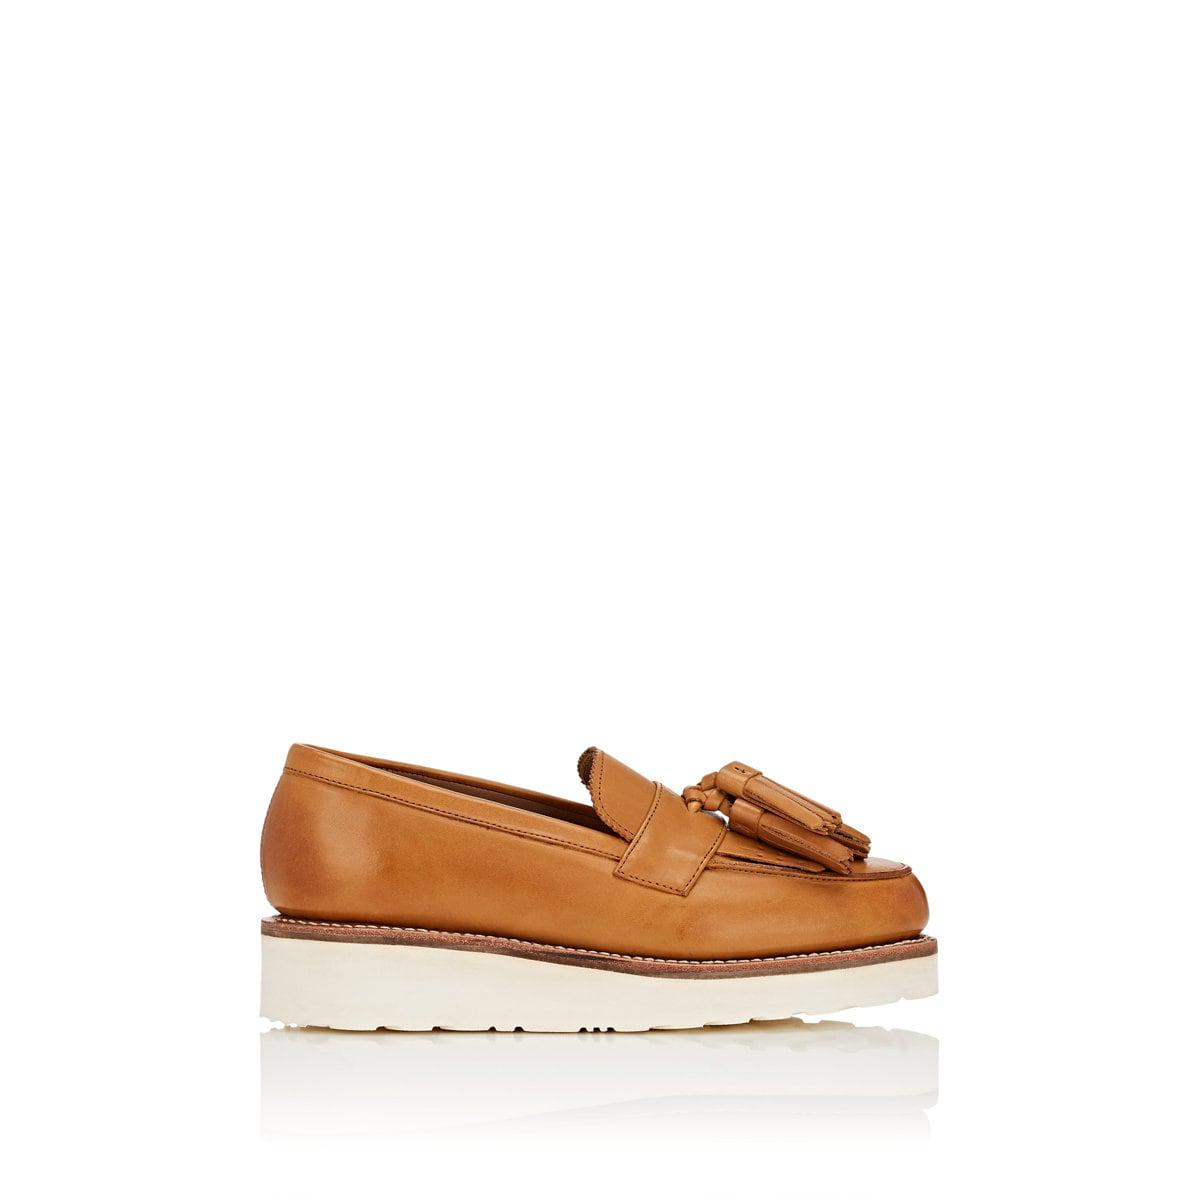 40123c0243e Lyst - Grenson Clara Leather Wedge Loafers in Brown